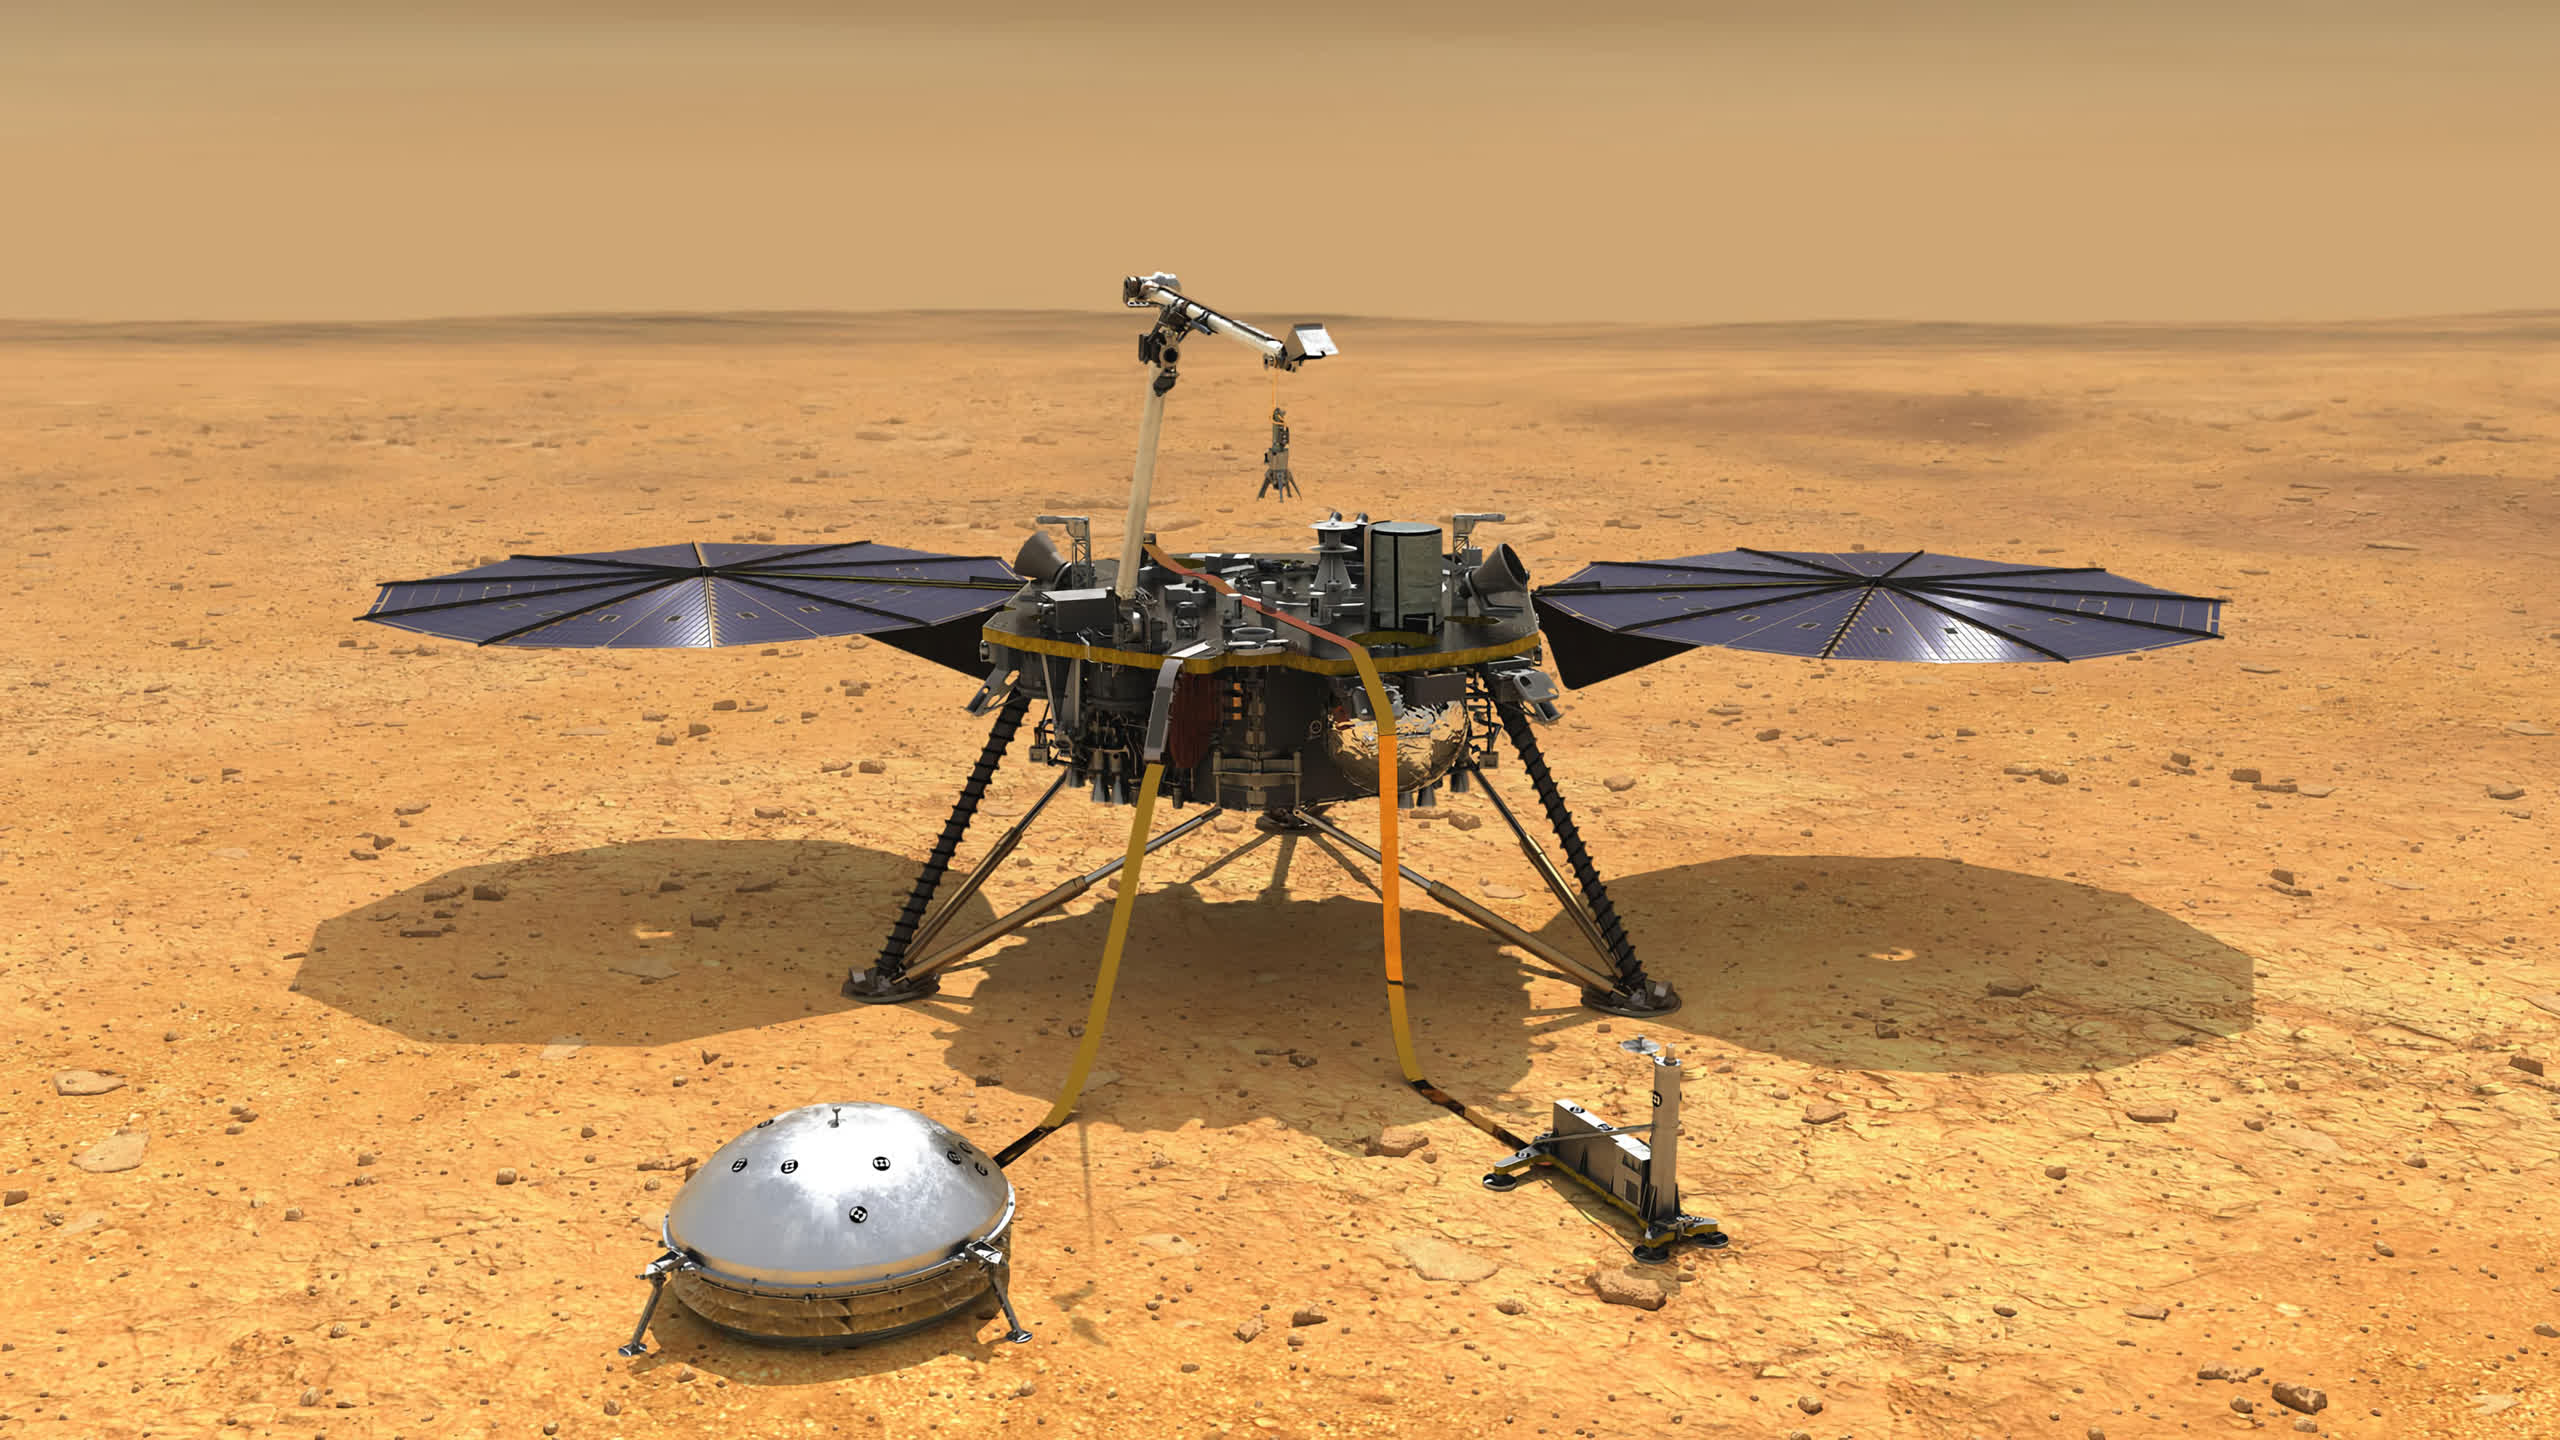 Unexpected soil conditions force NASA to abandon key InSight lander objective